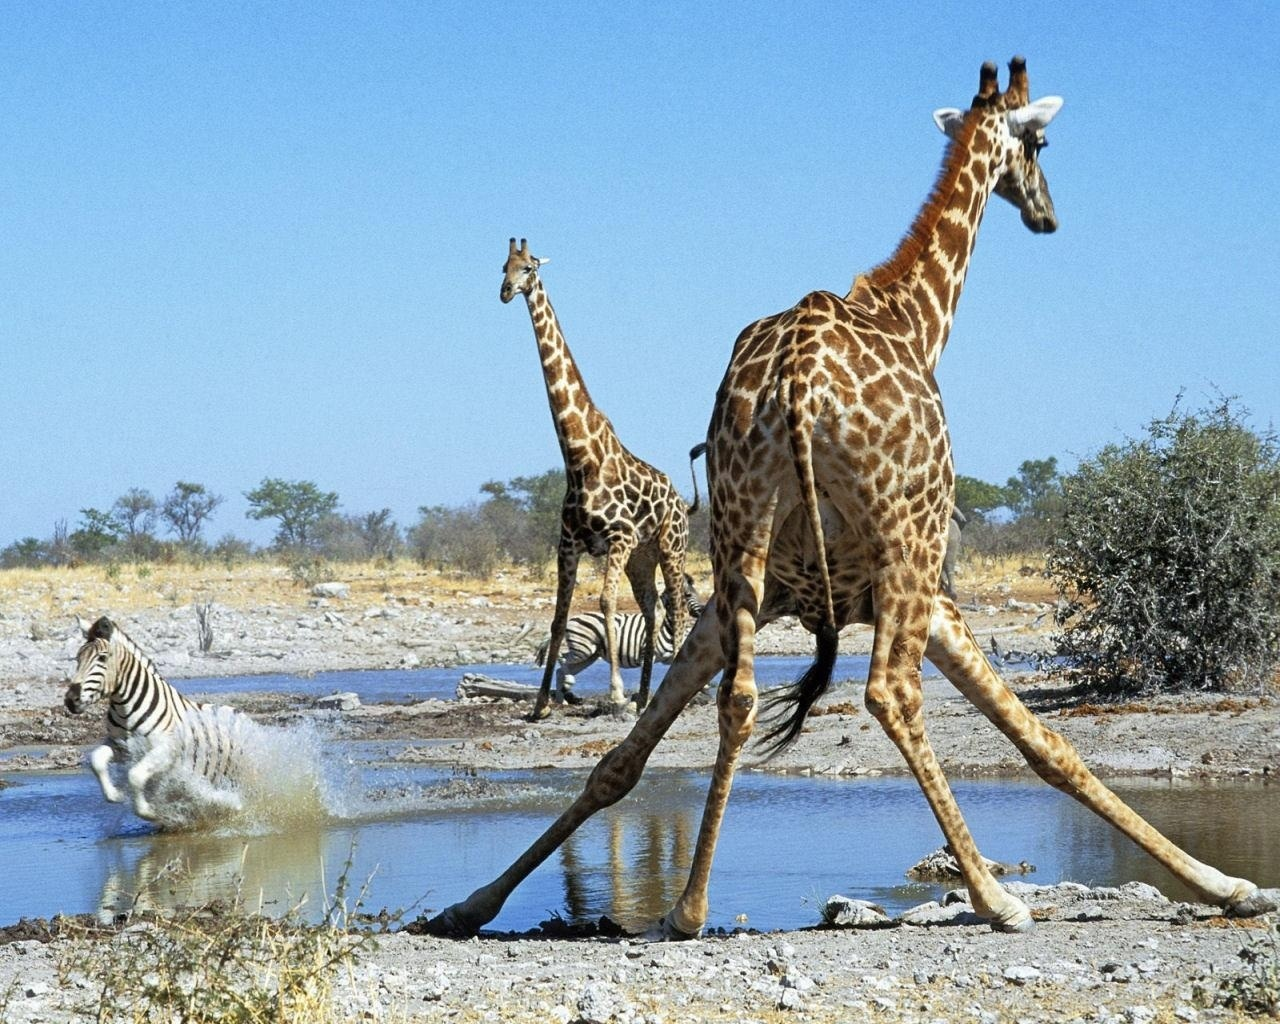 zebras and giraffes - photo #31